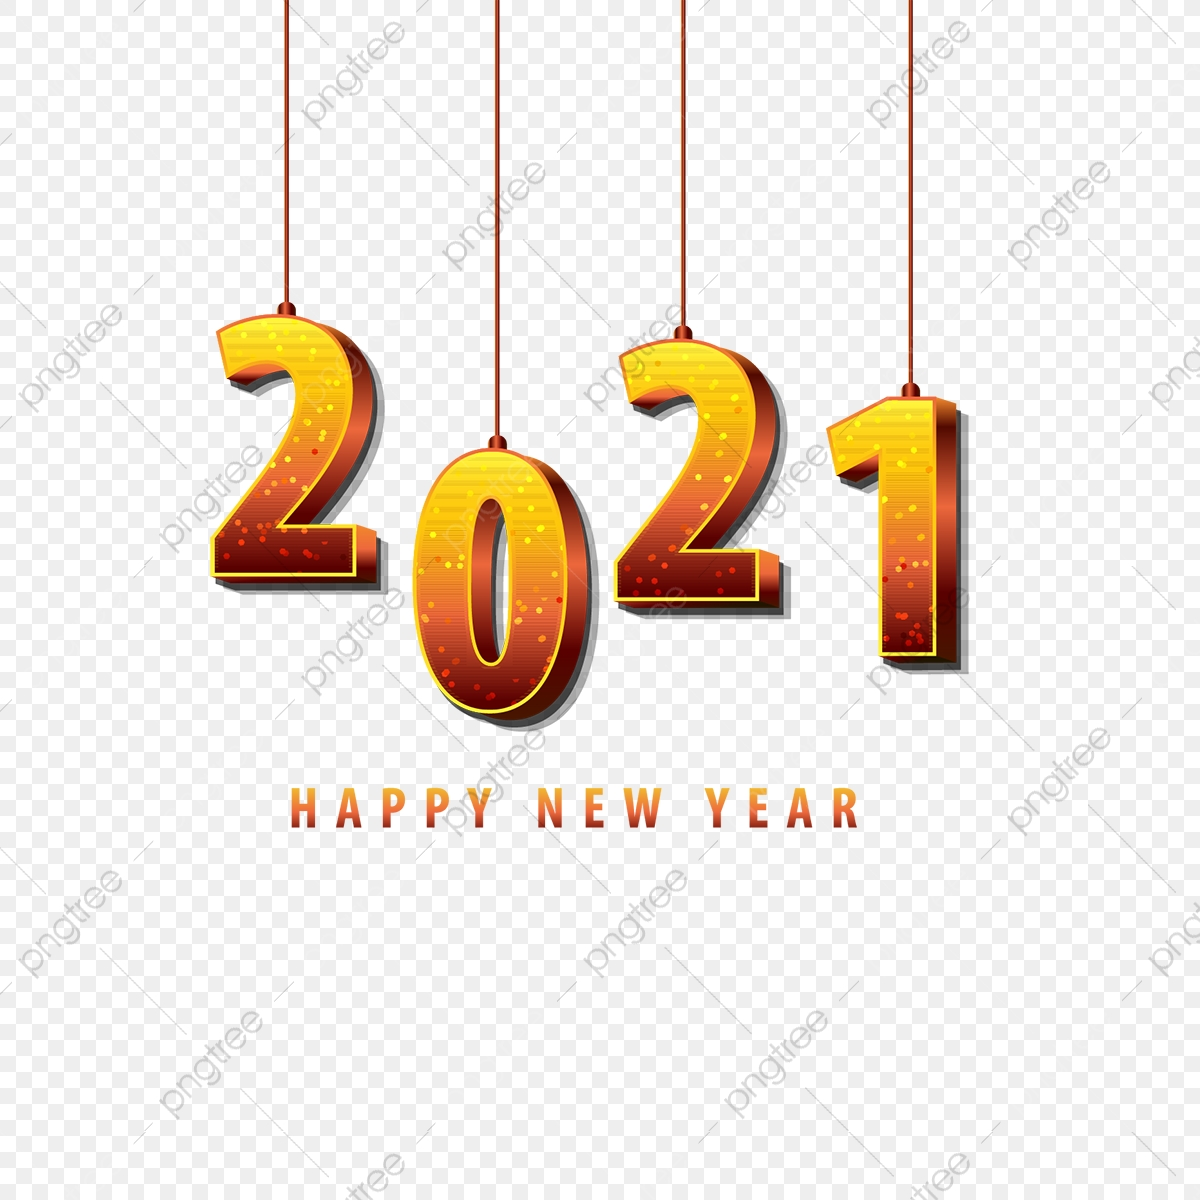 Happy New Year 2021 Merry Christmas Design 2021 Abstract Art Png And Vector With Transparent Background For Free Download